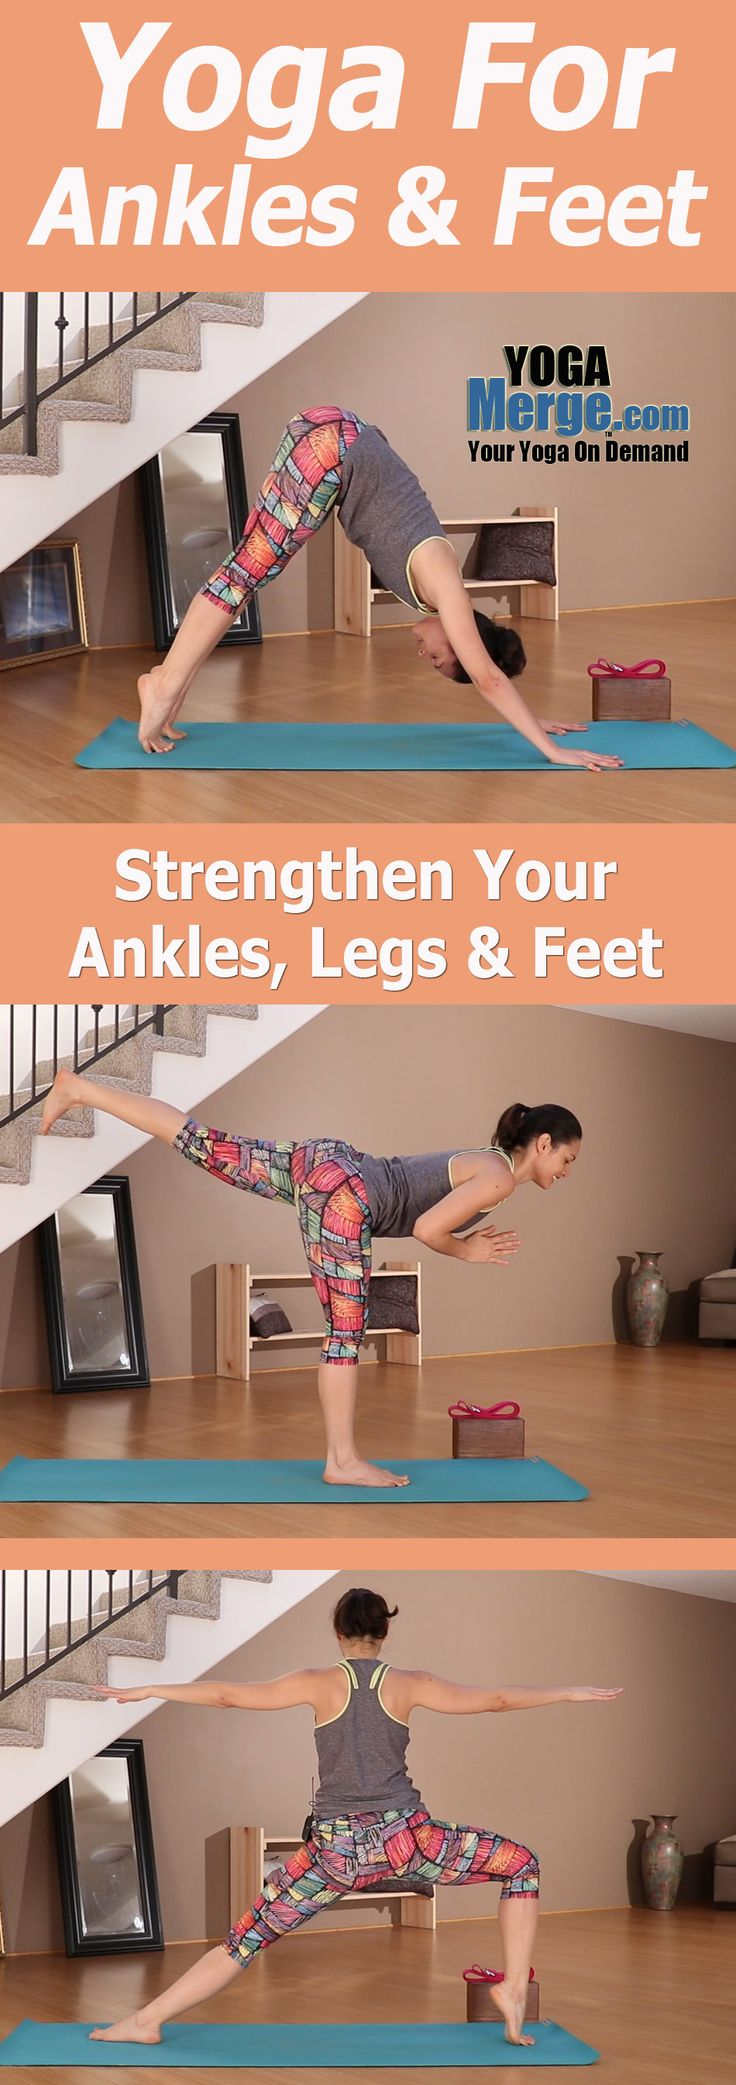 Join Ariana for class focused on helping strengthen your ankles, feet and legs. Build a little sweat as you work to create a better lower body. Full preview on our site! Online yoga classes for your home practice.